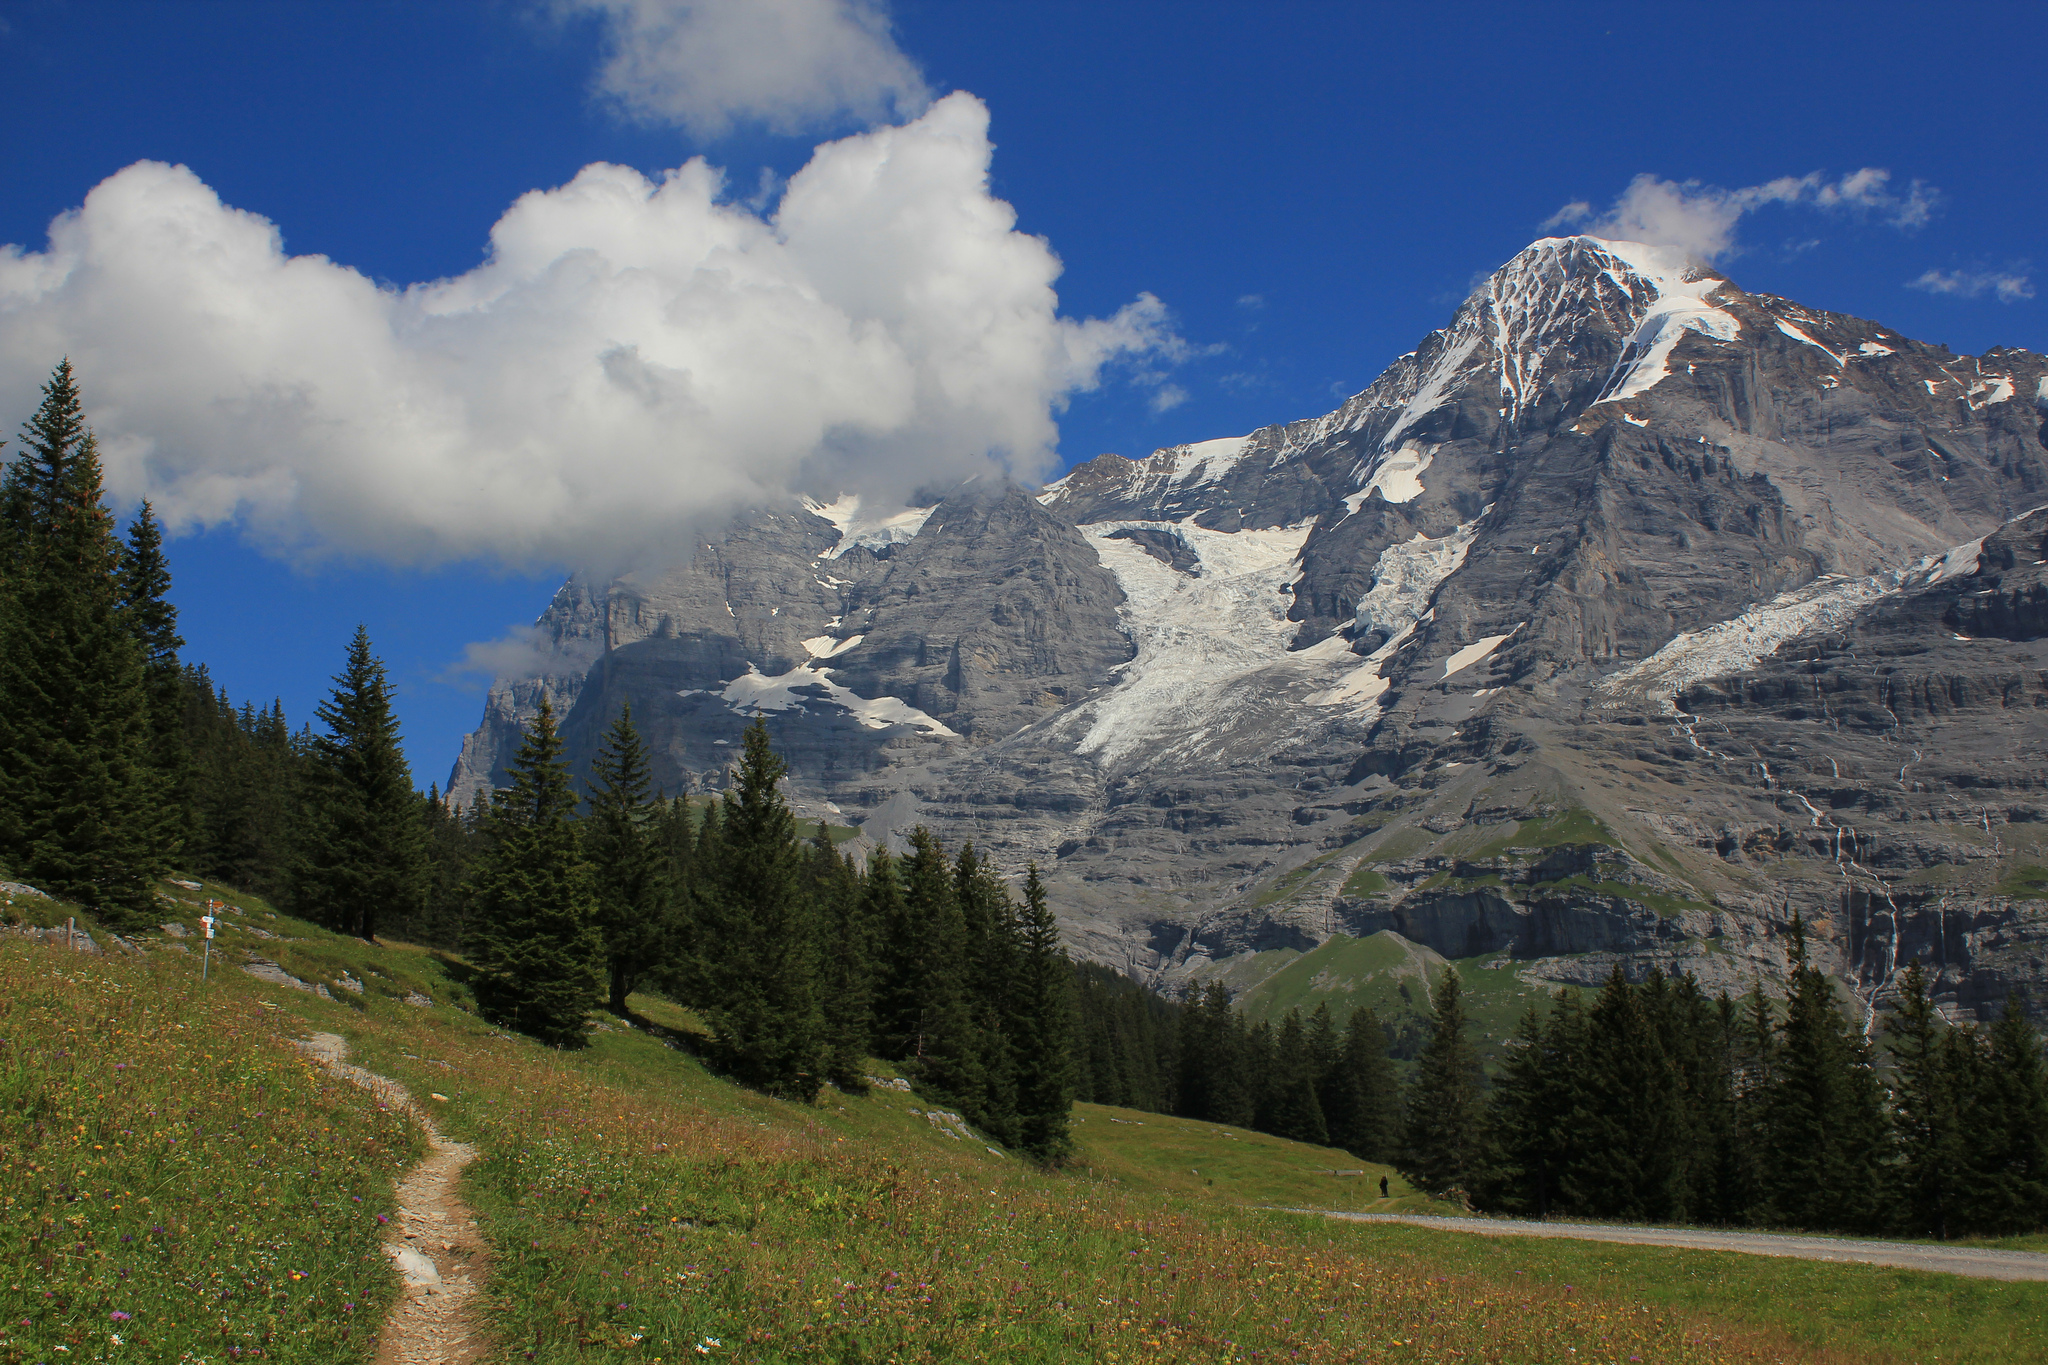 Swiss mountains, the Eiger north face and Mönch